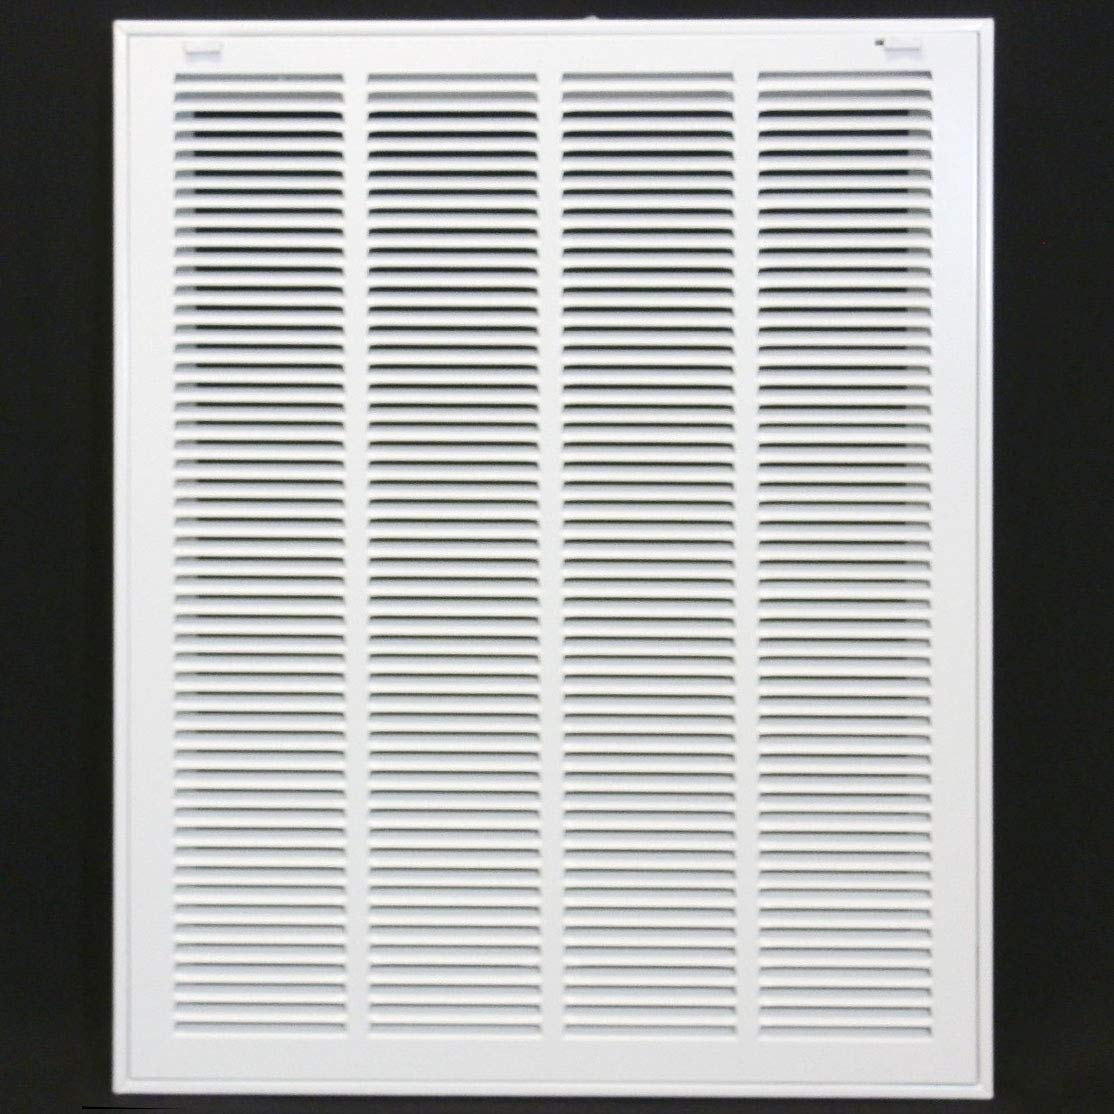 20'' X 25 Steel Return Air Filter Grille for 1'' Filter - Removable Face/Door - HVAC DUCT COVER - Flat Stamped Face - White [Outer Dimensions: 22.5 X 26.75] by HVAC Premium